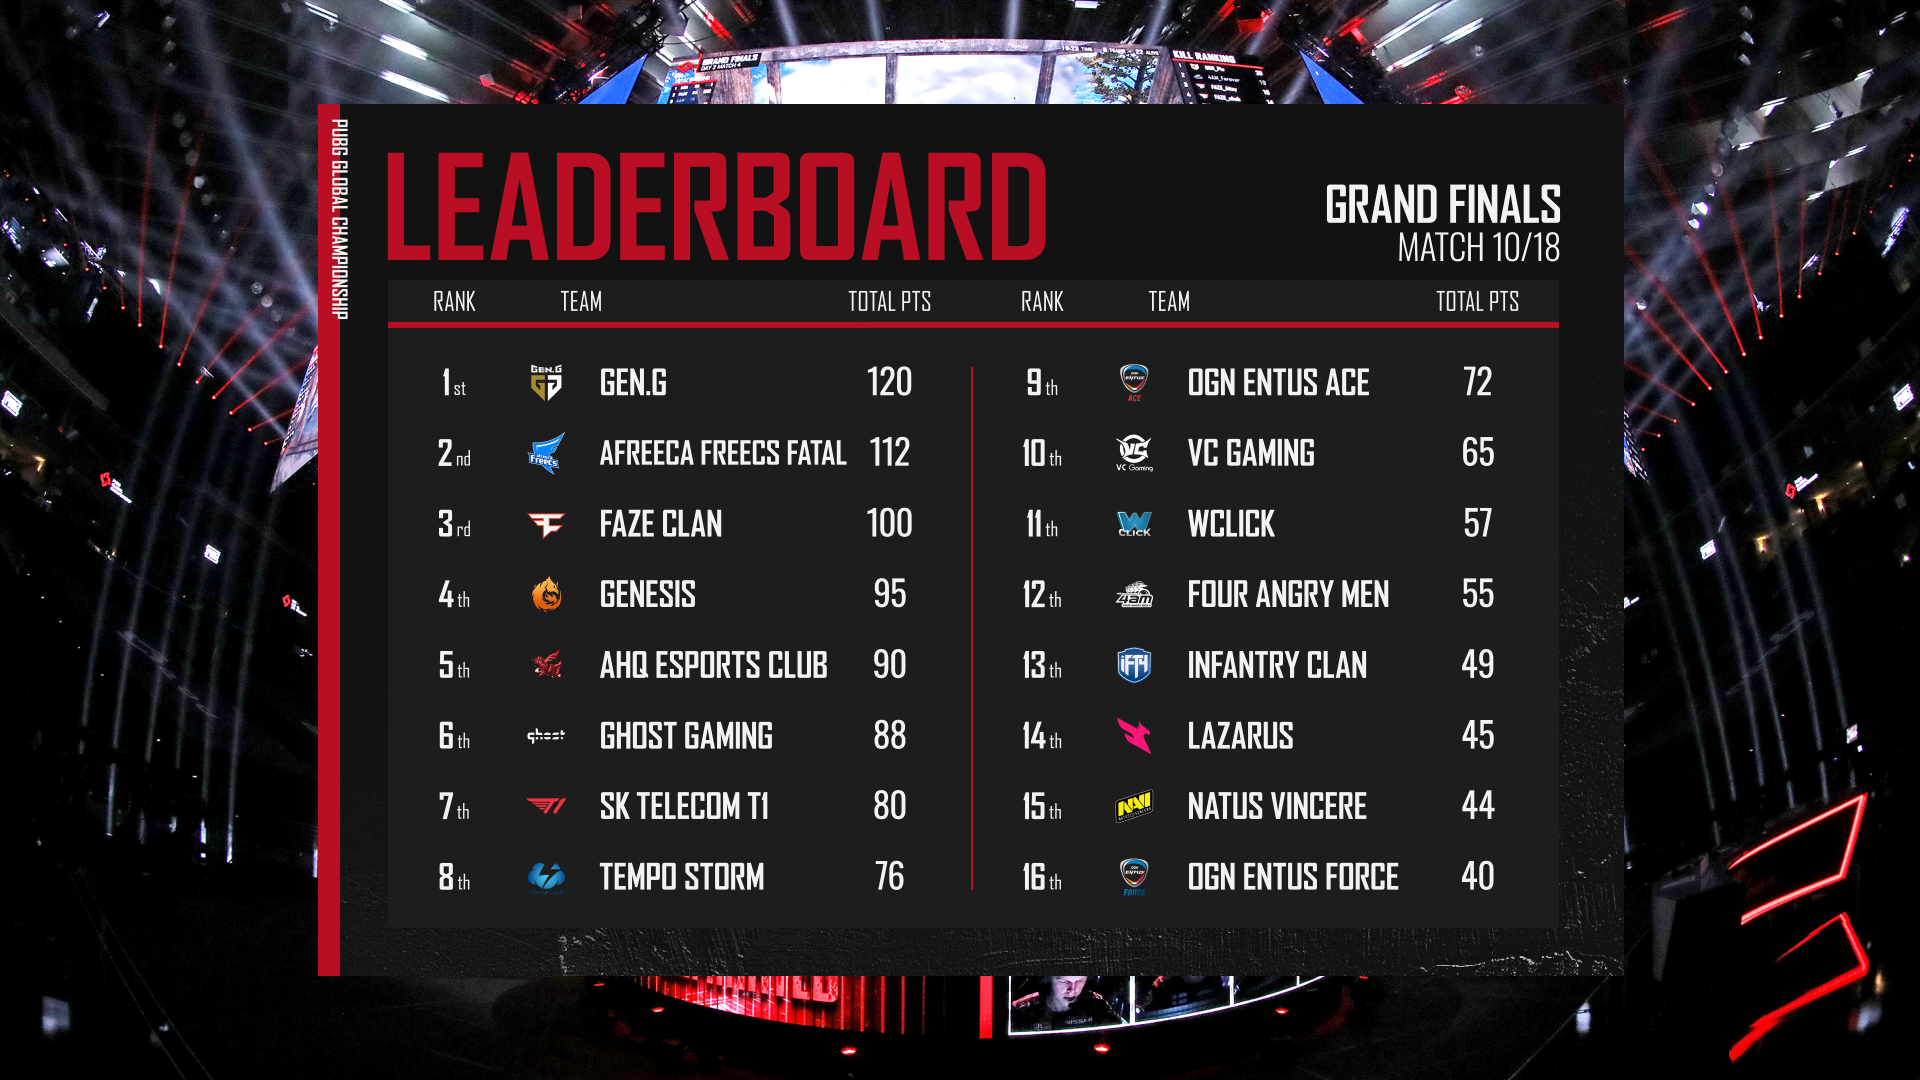 13_Post-Roll_02_Leaderboard_Grand finals